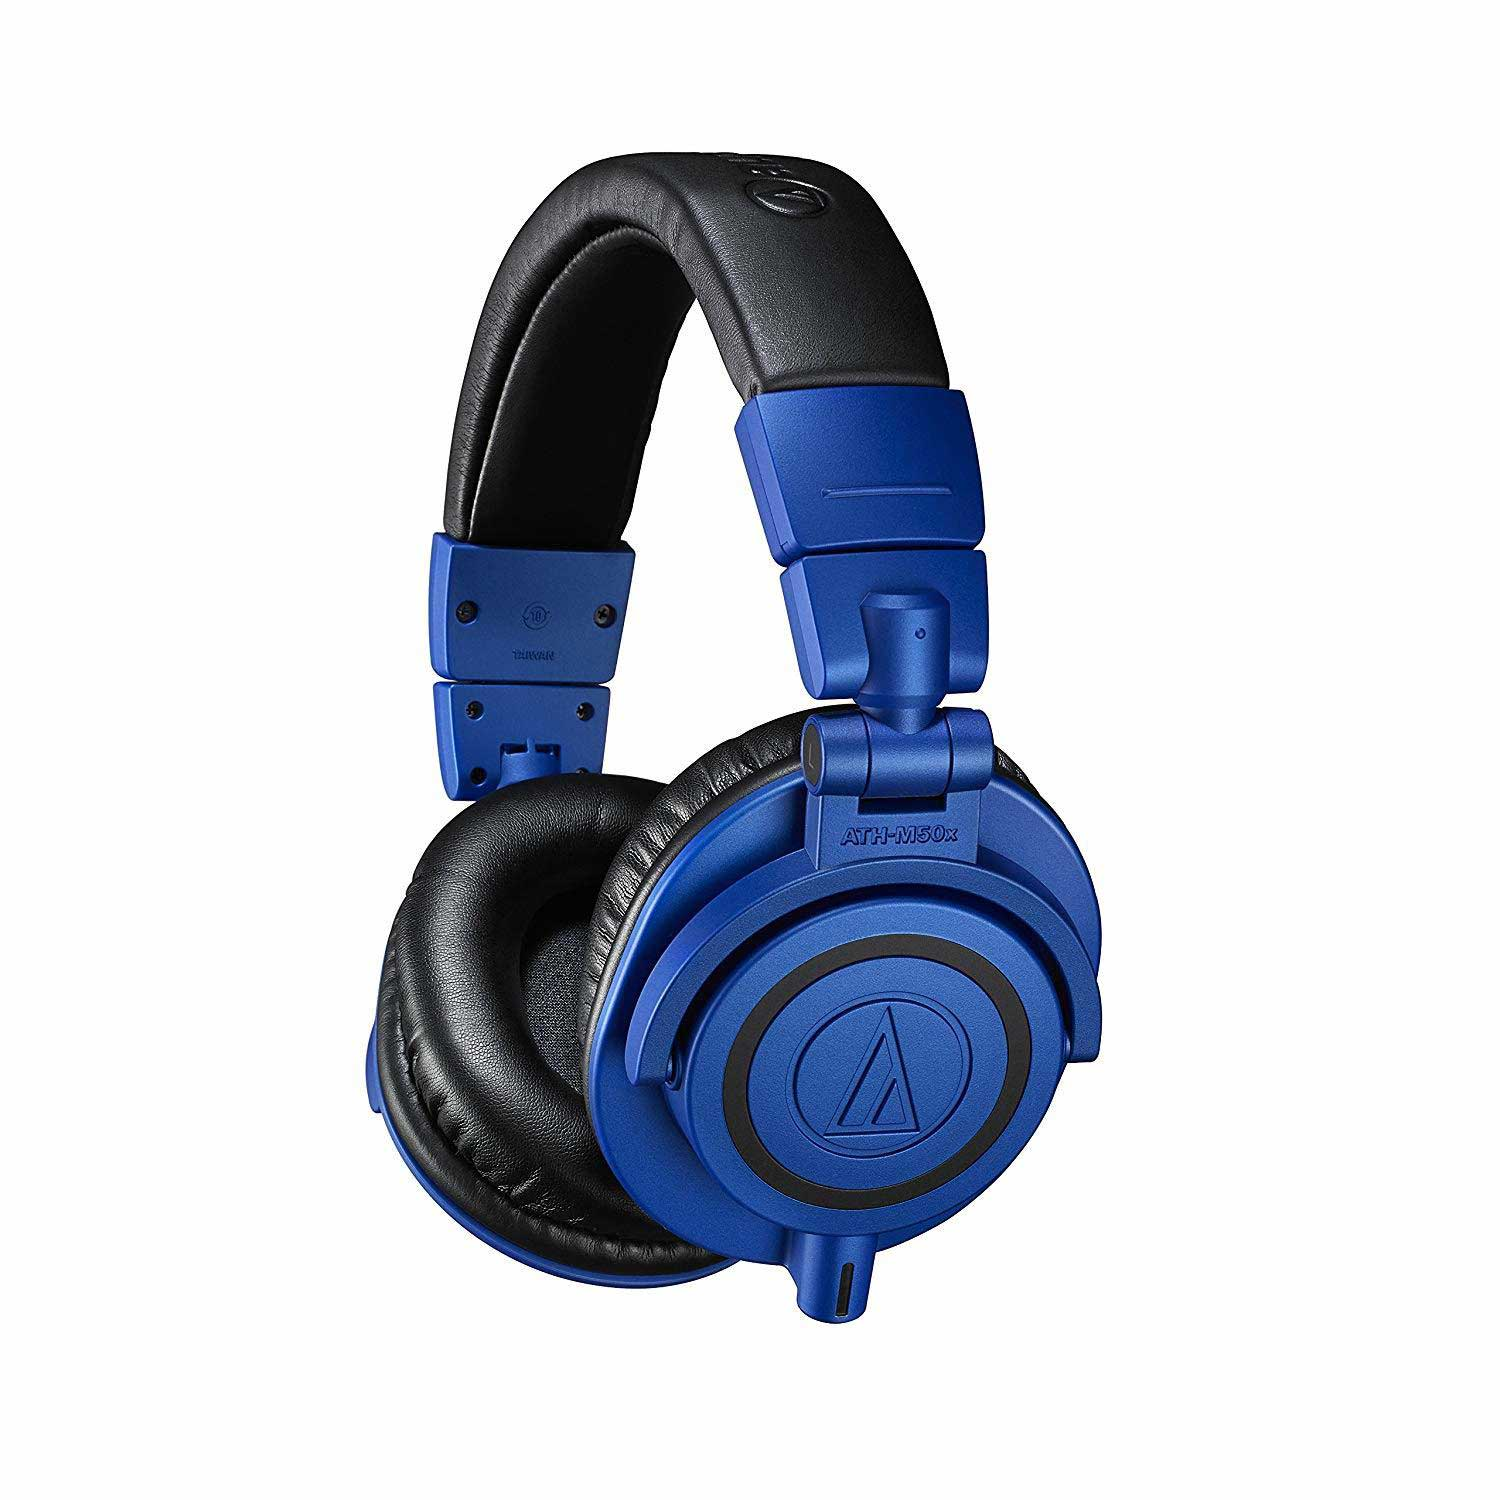 Audio-Technica ATH-M50xBB Limited Edition Professional Studio Monitor Headphones